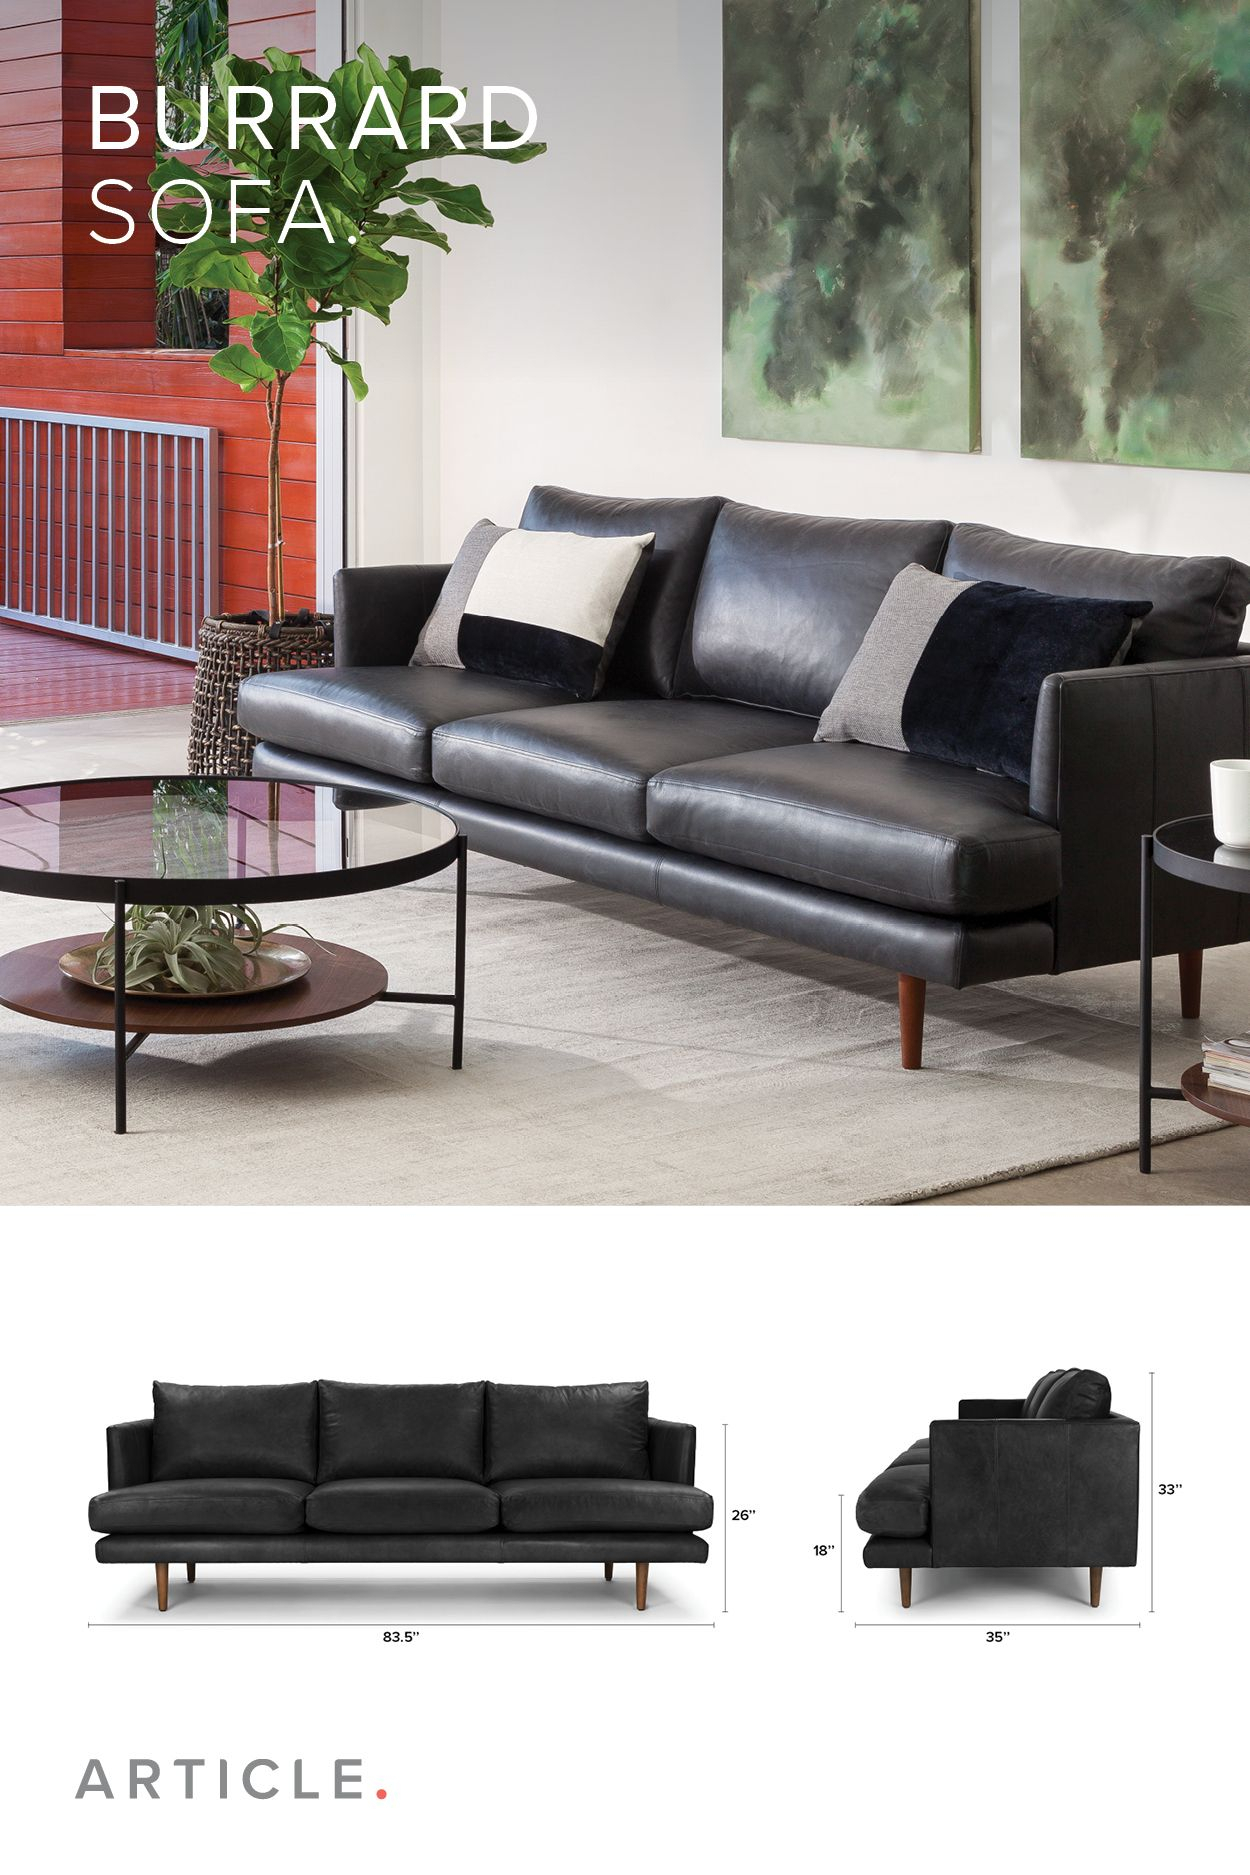 Black Leather Sofa, 3 Seater, Solid Wood Legs | Article Burrard In Cosette Leather Sofa Chairs (View 19 of 20)